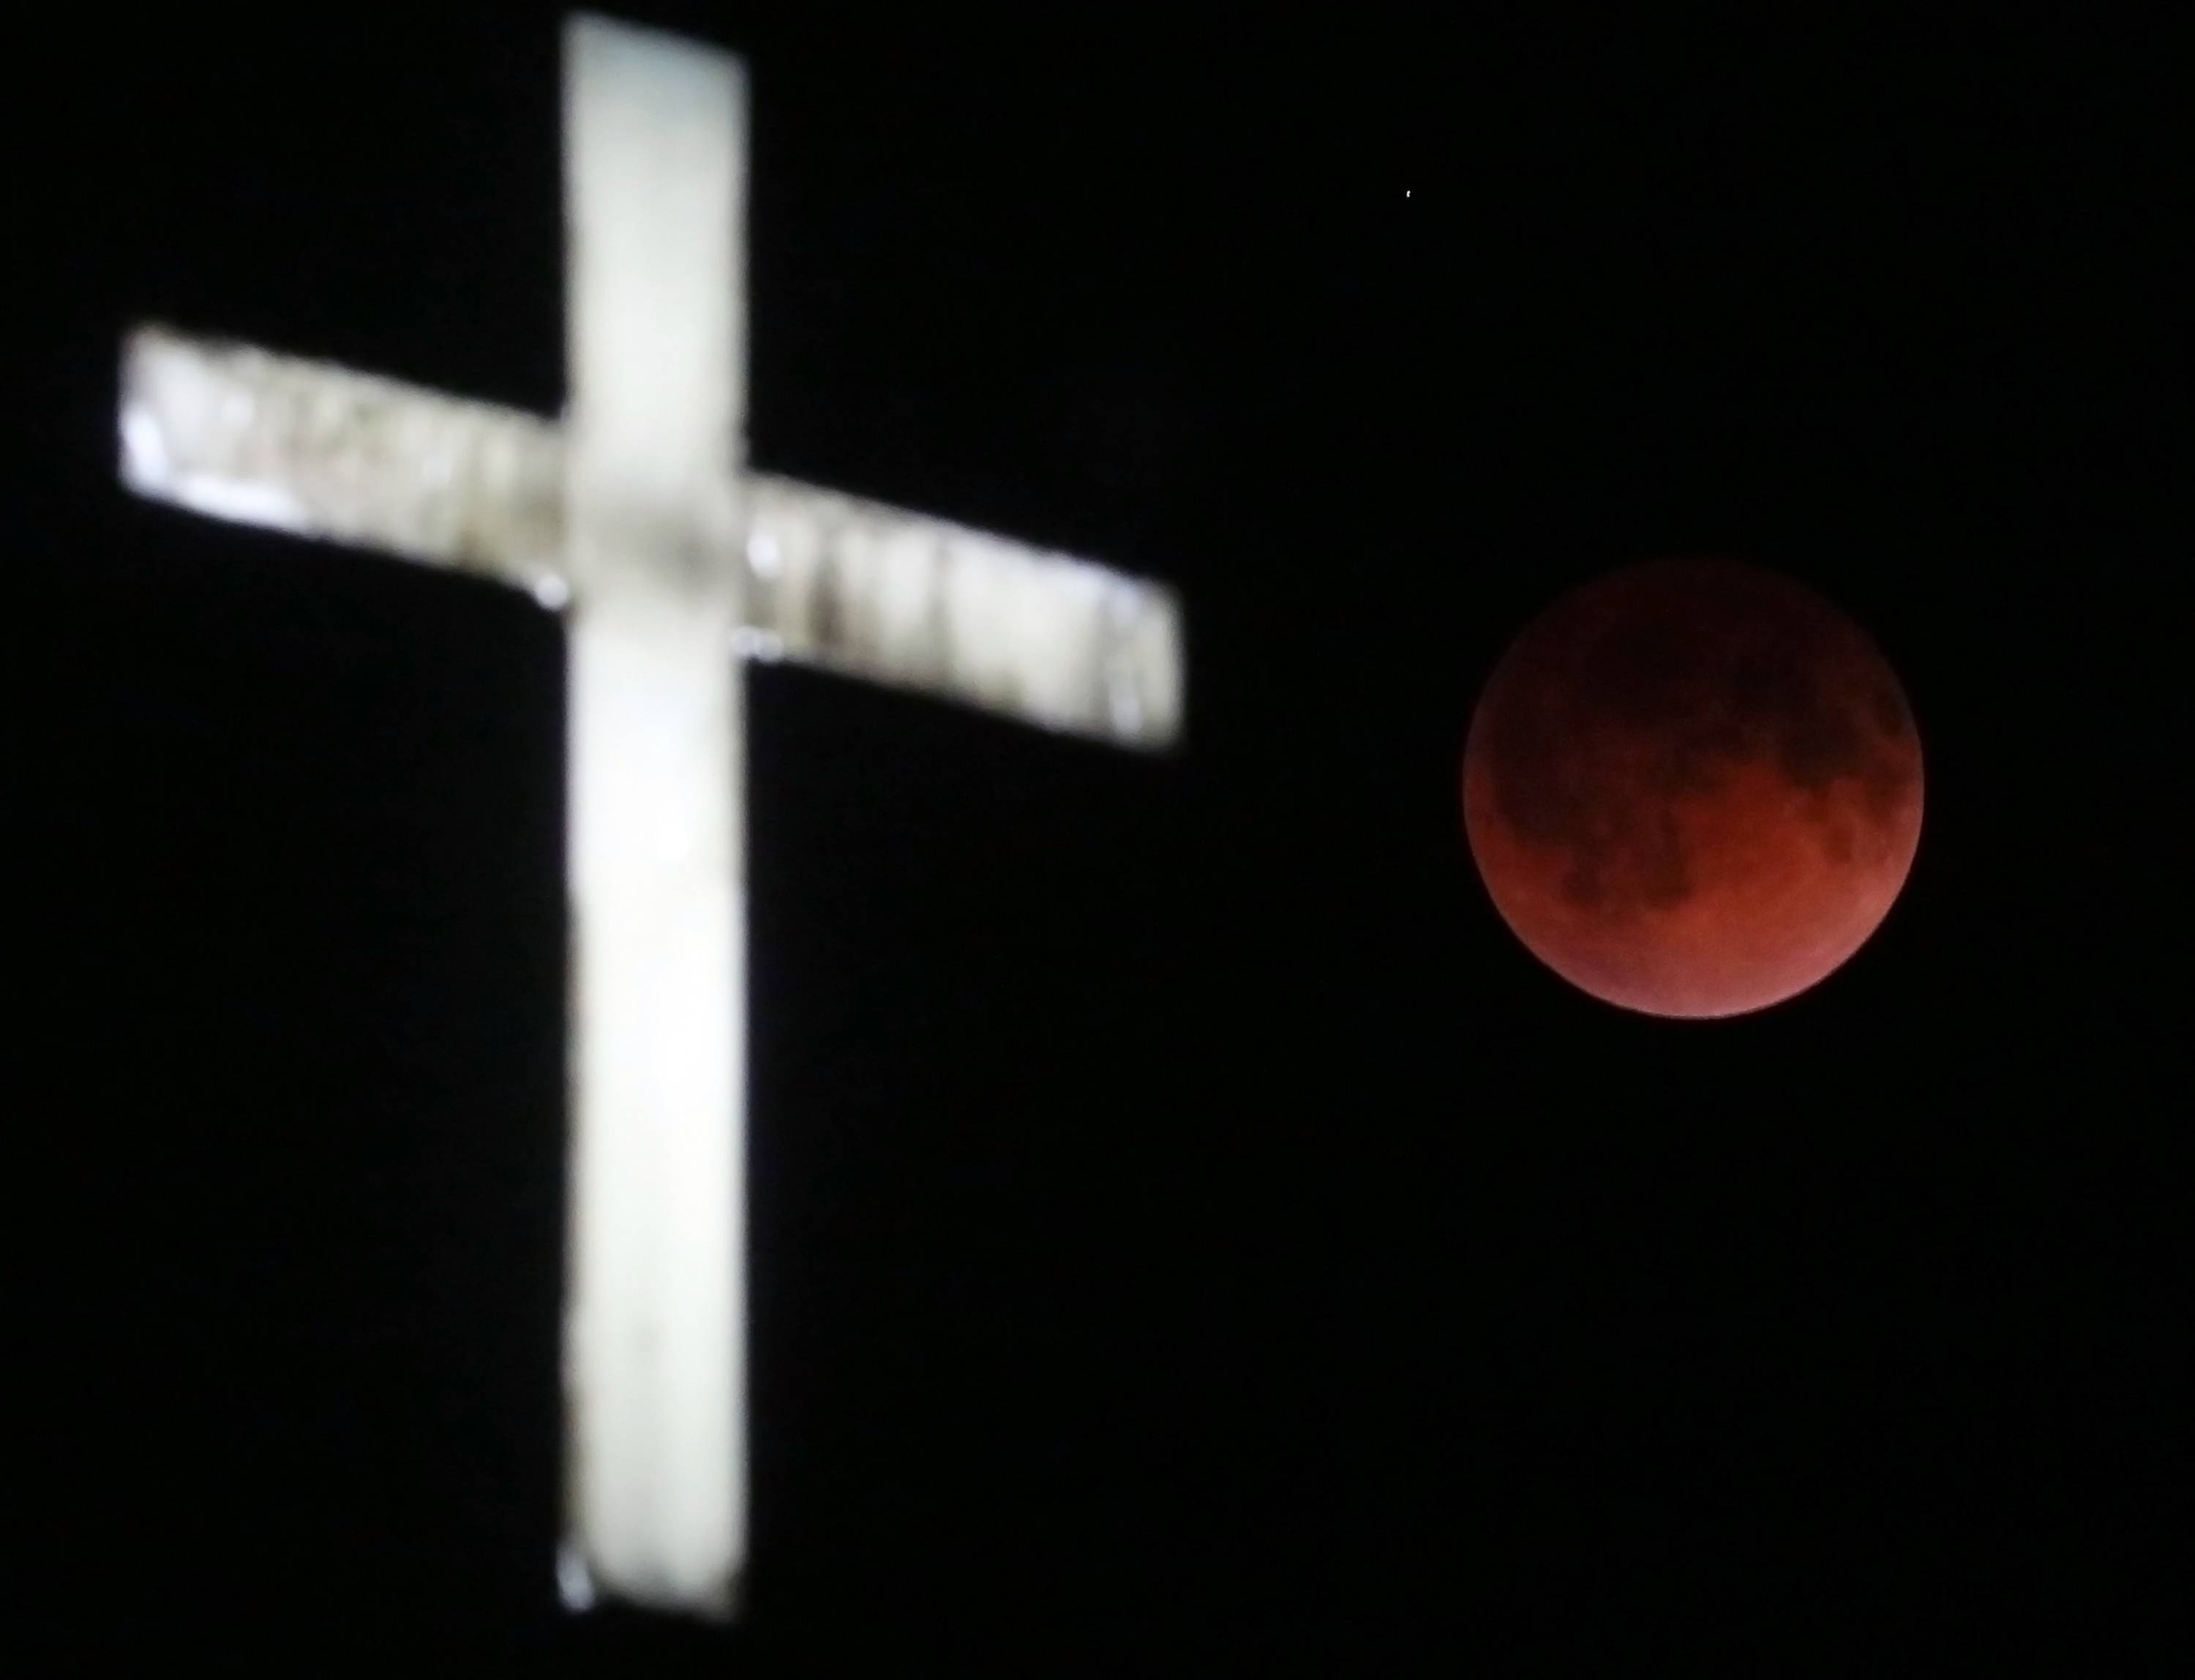 The Earth's shadow renders the moon in a crimson hue during a total lunar eclipse behind the illuminated steeple of St. Olaf Lutheran Church in the town of Ashippun, Wis. Tuesday, April 15, 2014.